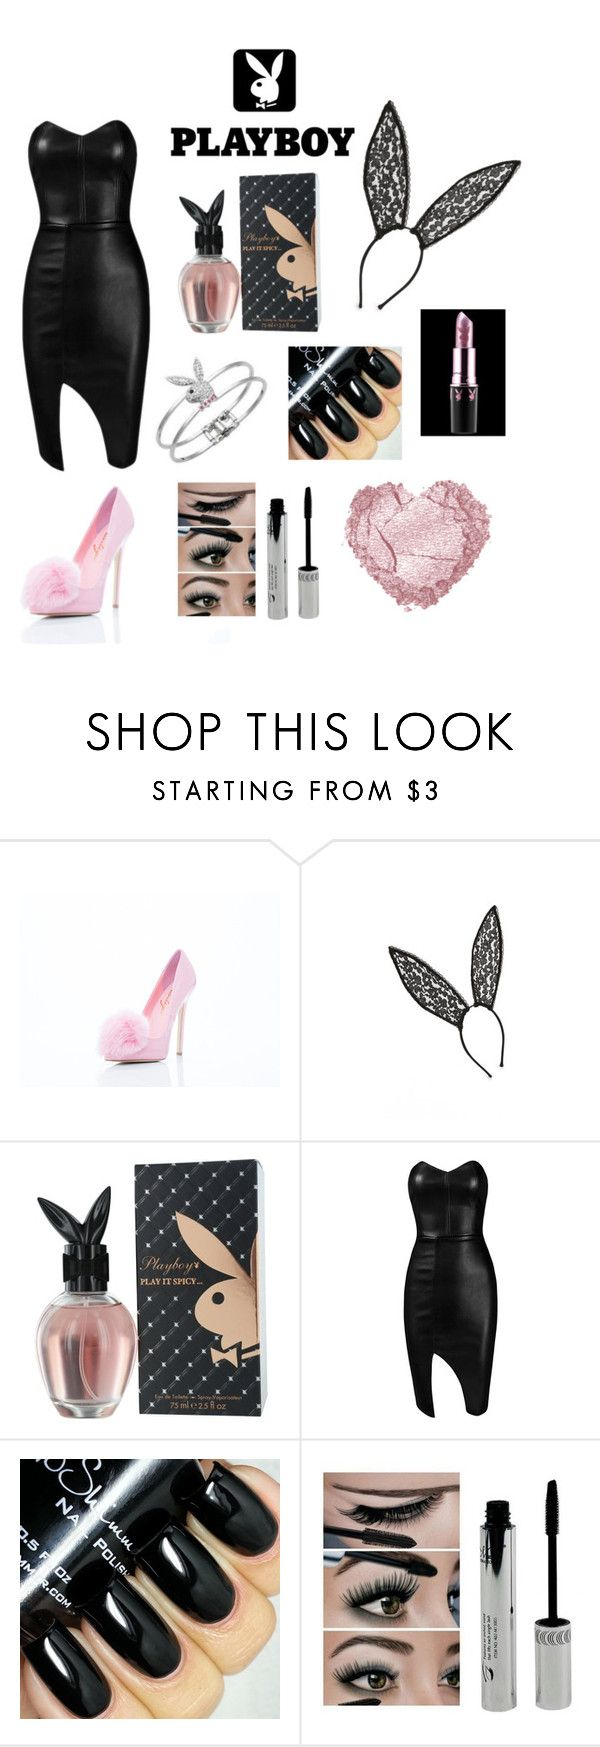 18 best Playboy Shoes images on Pinterest | Playboy bunny, Heels and ...